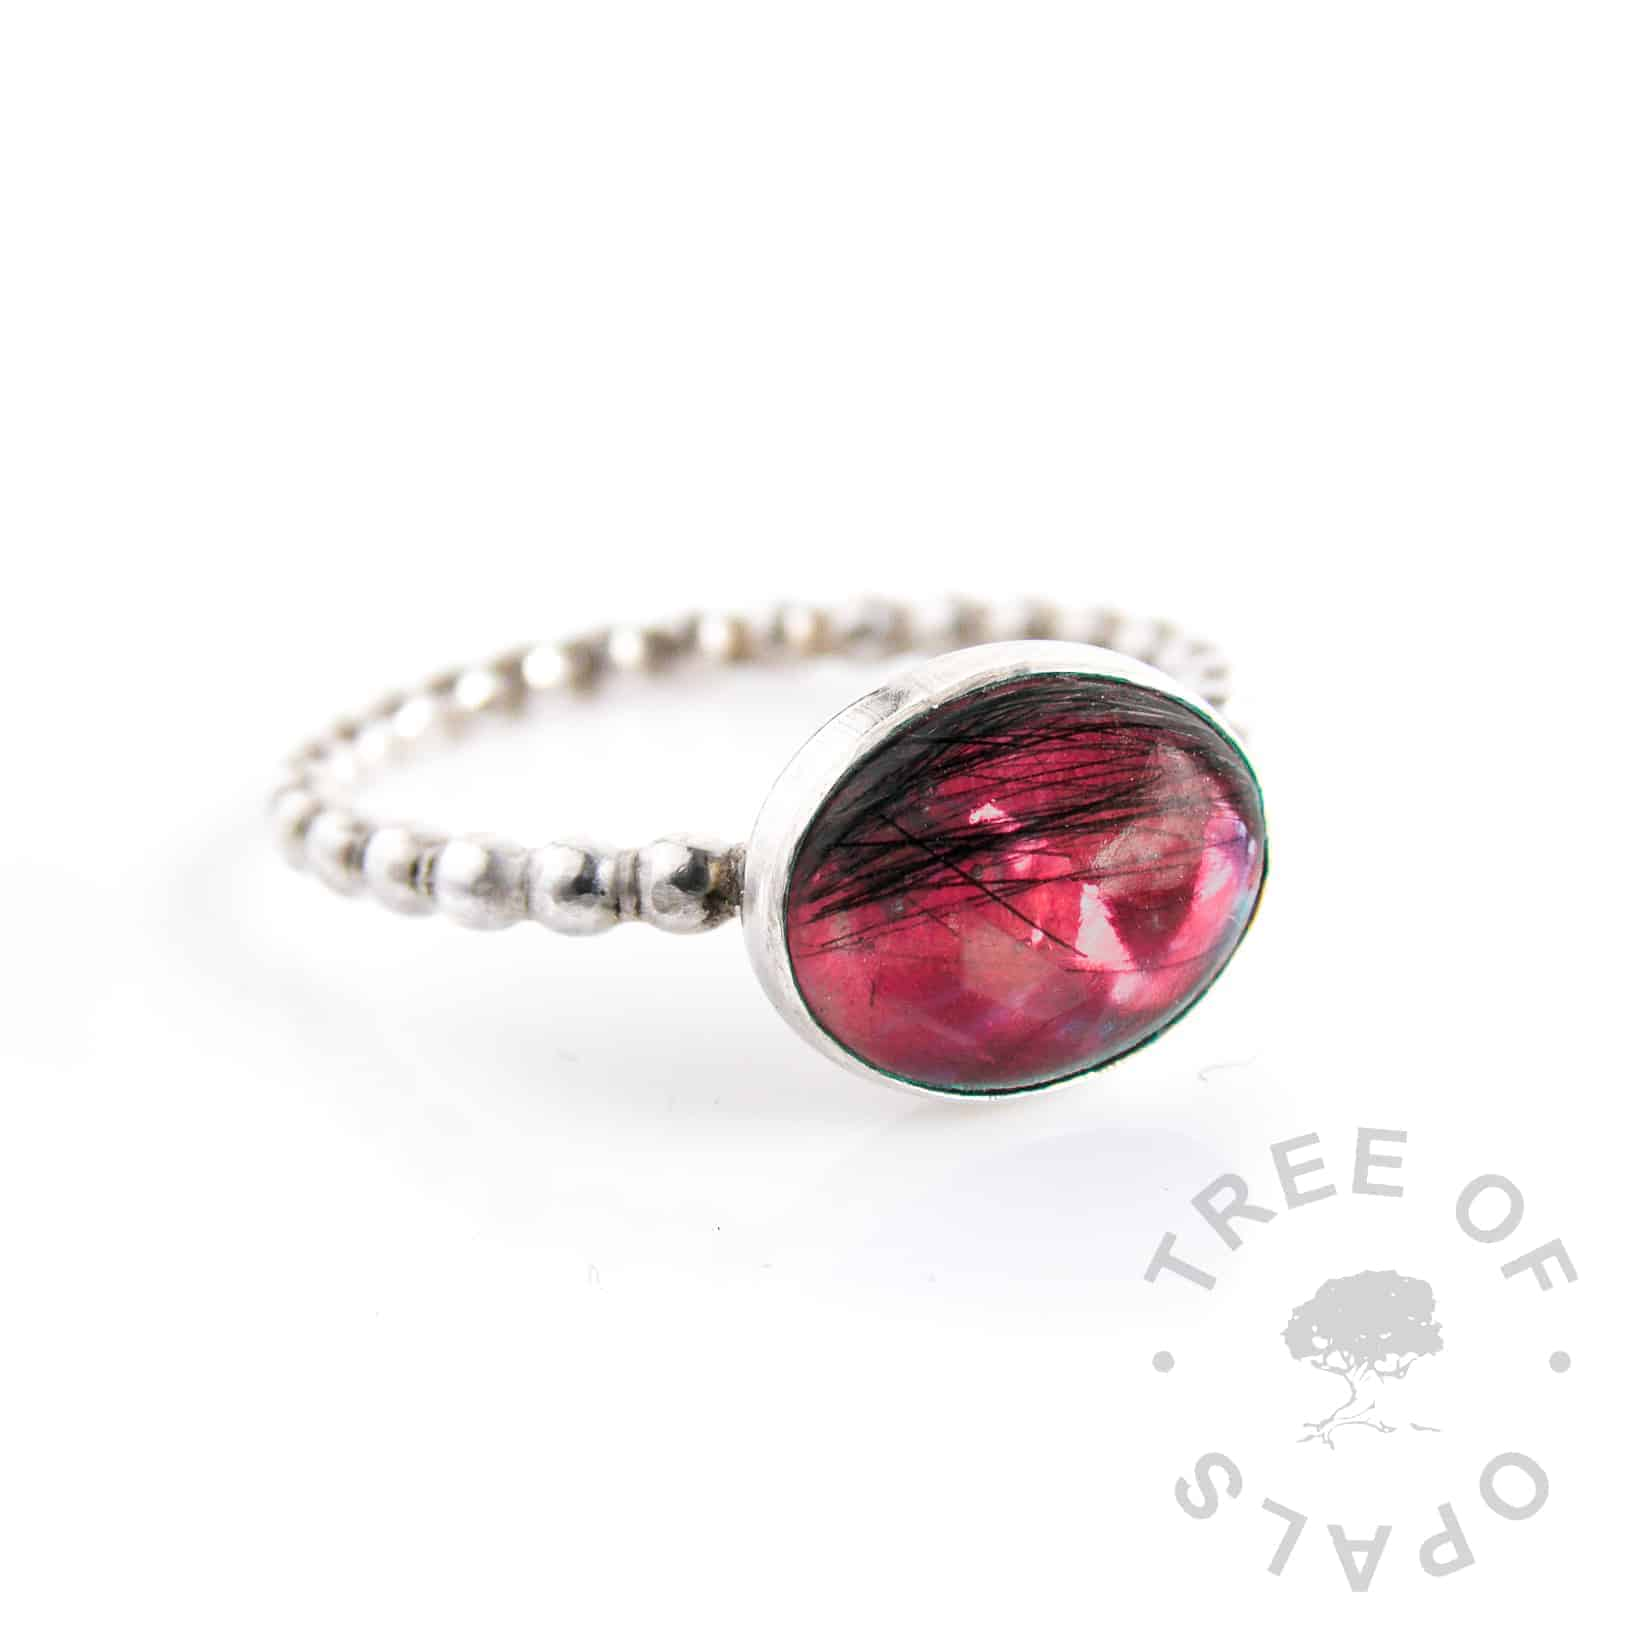 lock of hair ring with red opalescent flakes background on a bubble wire solid silver band and 10x8mm oval cabochon